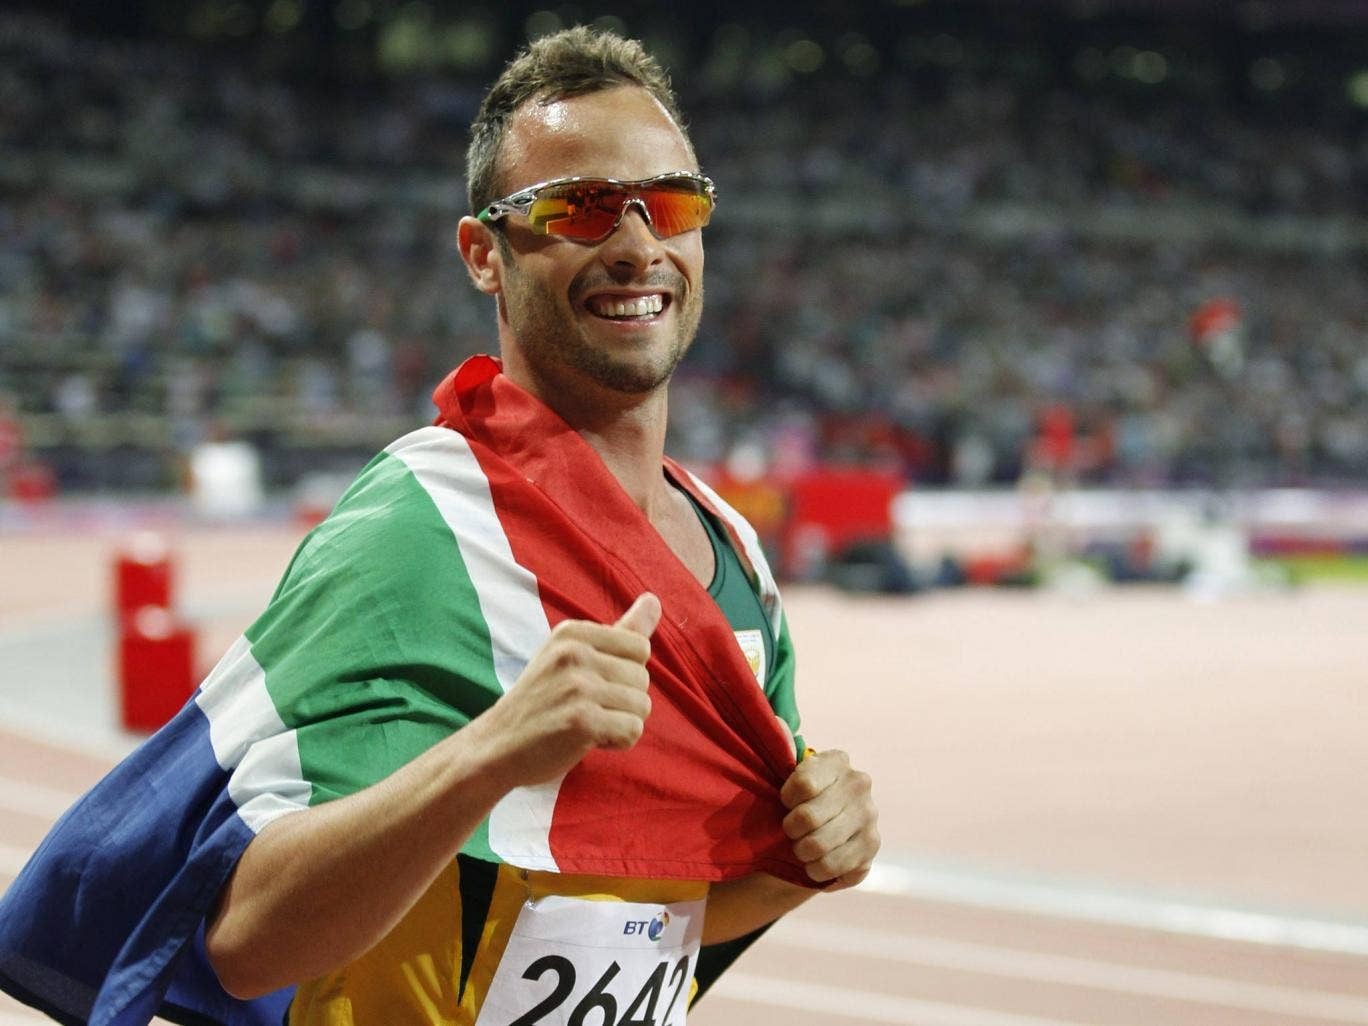 Oscar Pistorius at the Olympic Stadium during London 2012